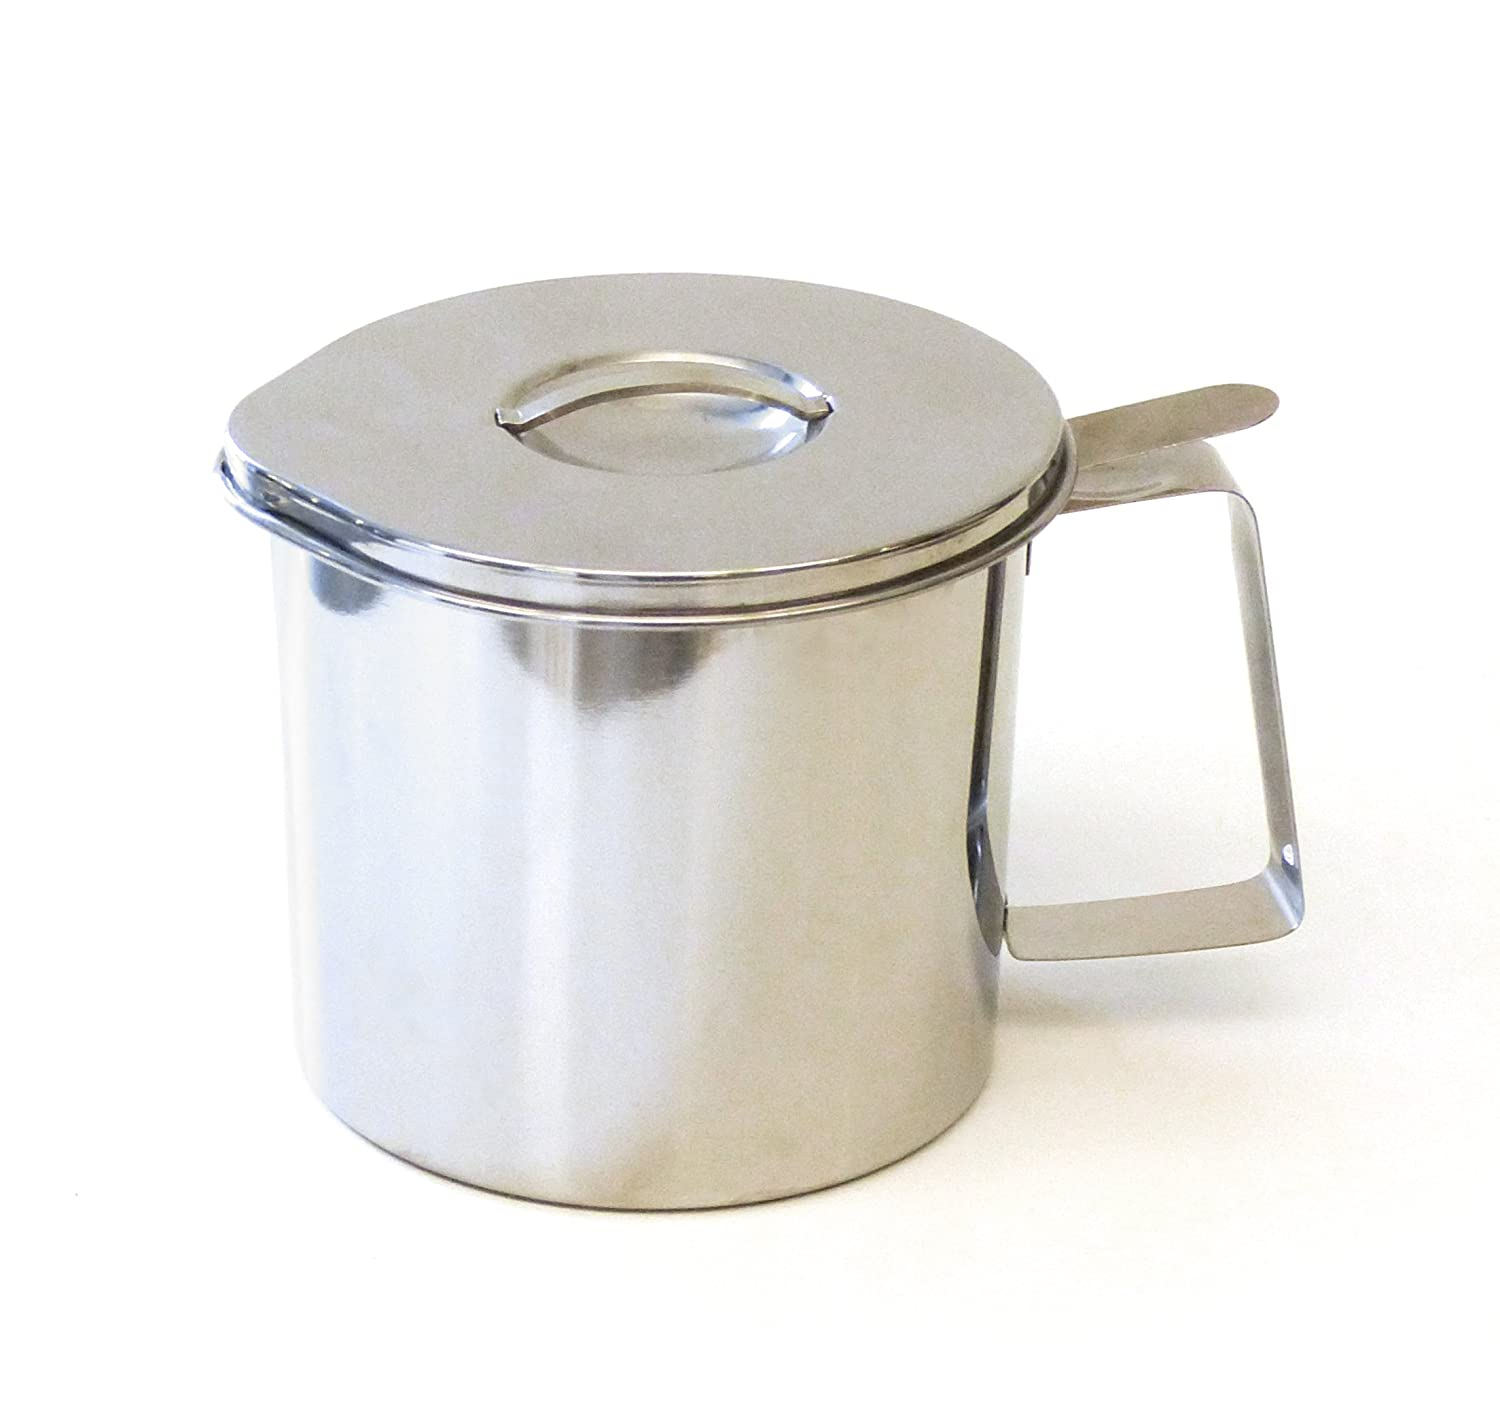 RSVP Endurance Stainless Steel Fryer's Friend (4-Cup) ST-40FF